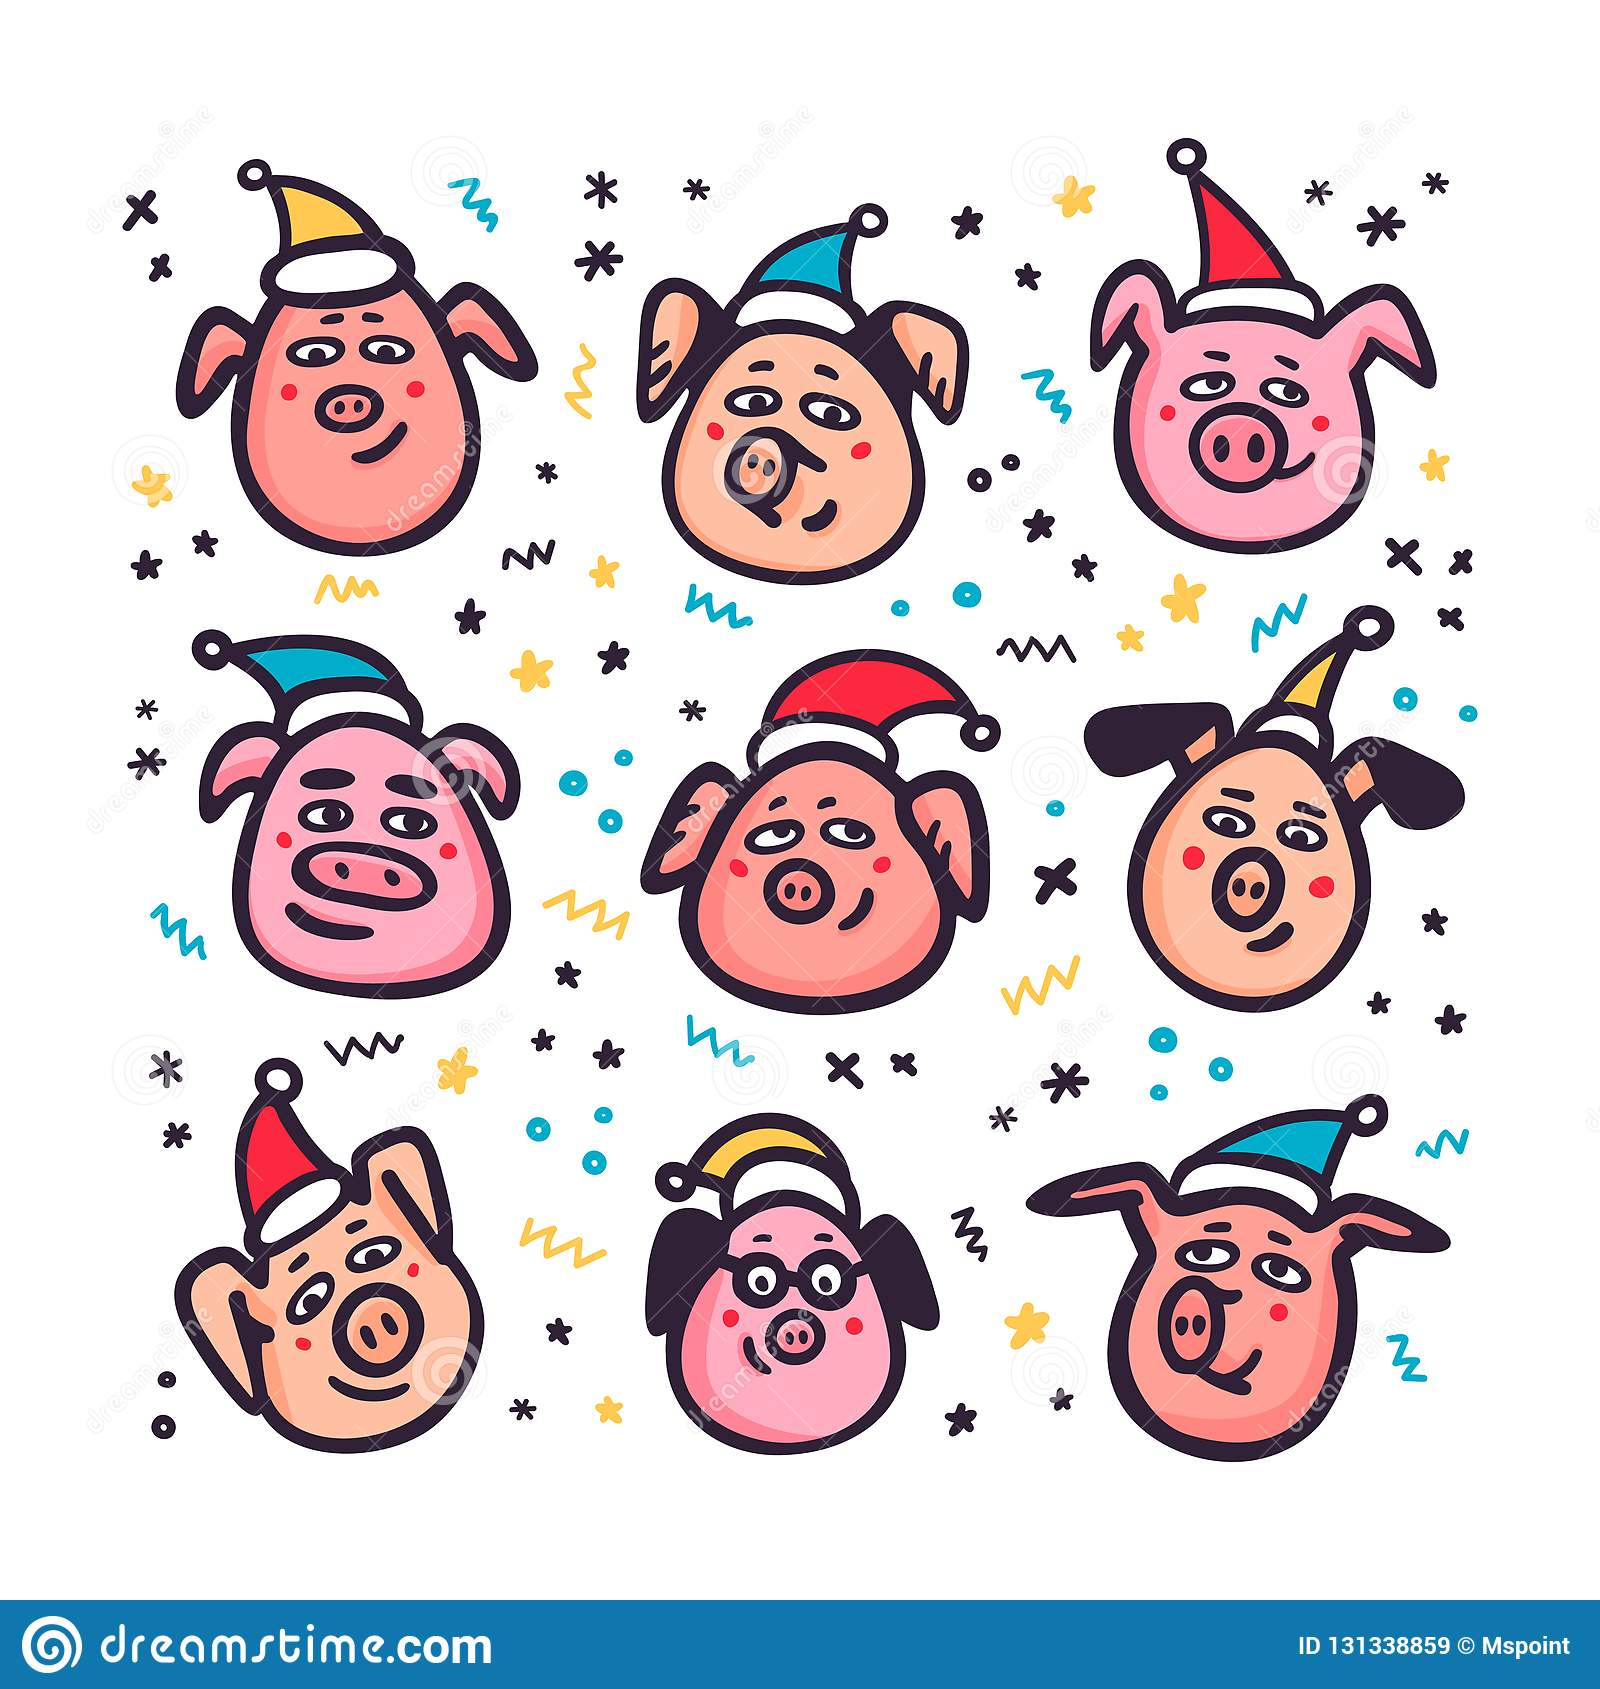 7b7db2bf884a9 Santa Pigs. Funny pigs with santa hats. 2019 Chinese New Year symbol.  Doodle style characters for greeting cards